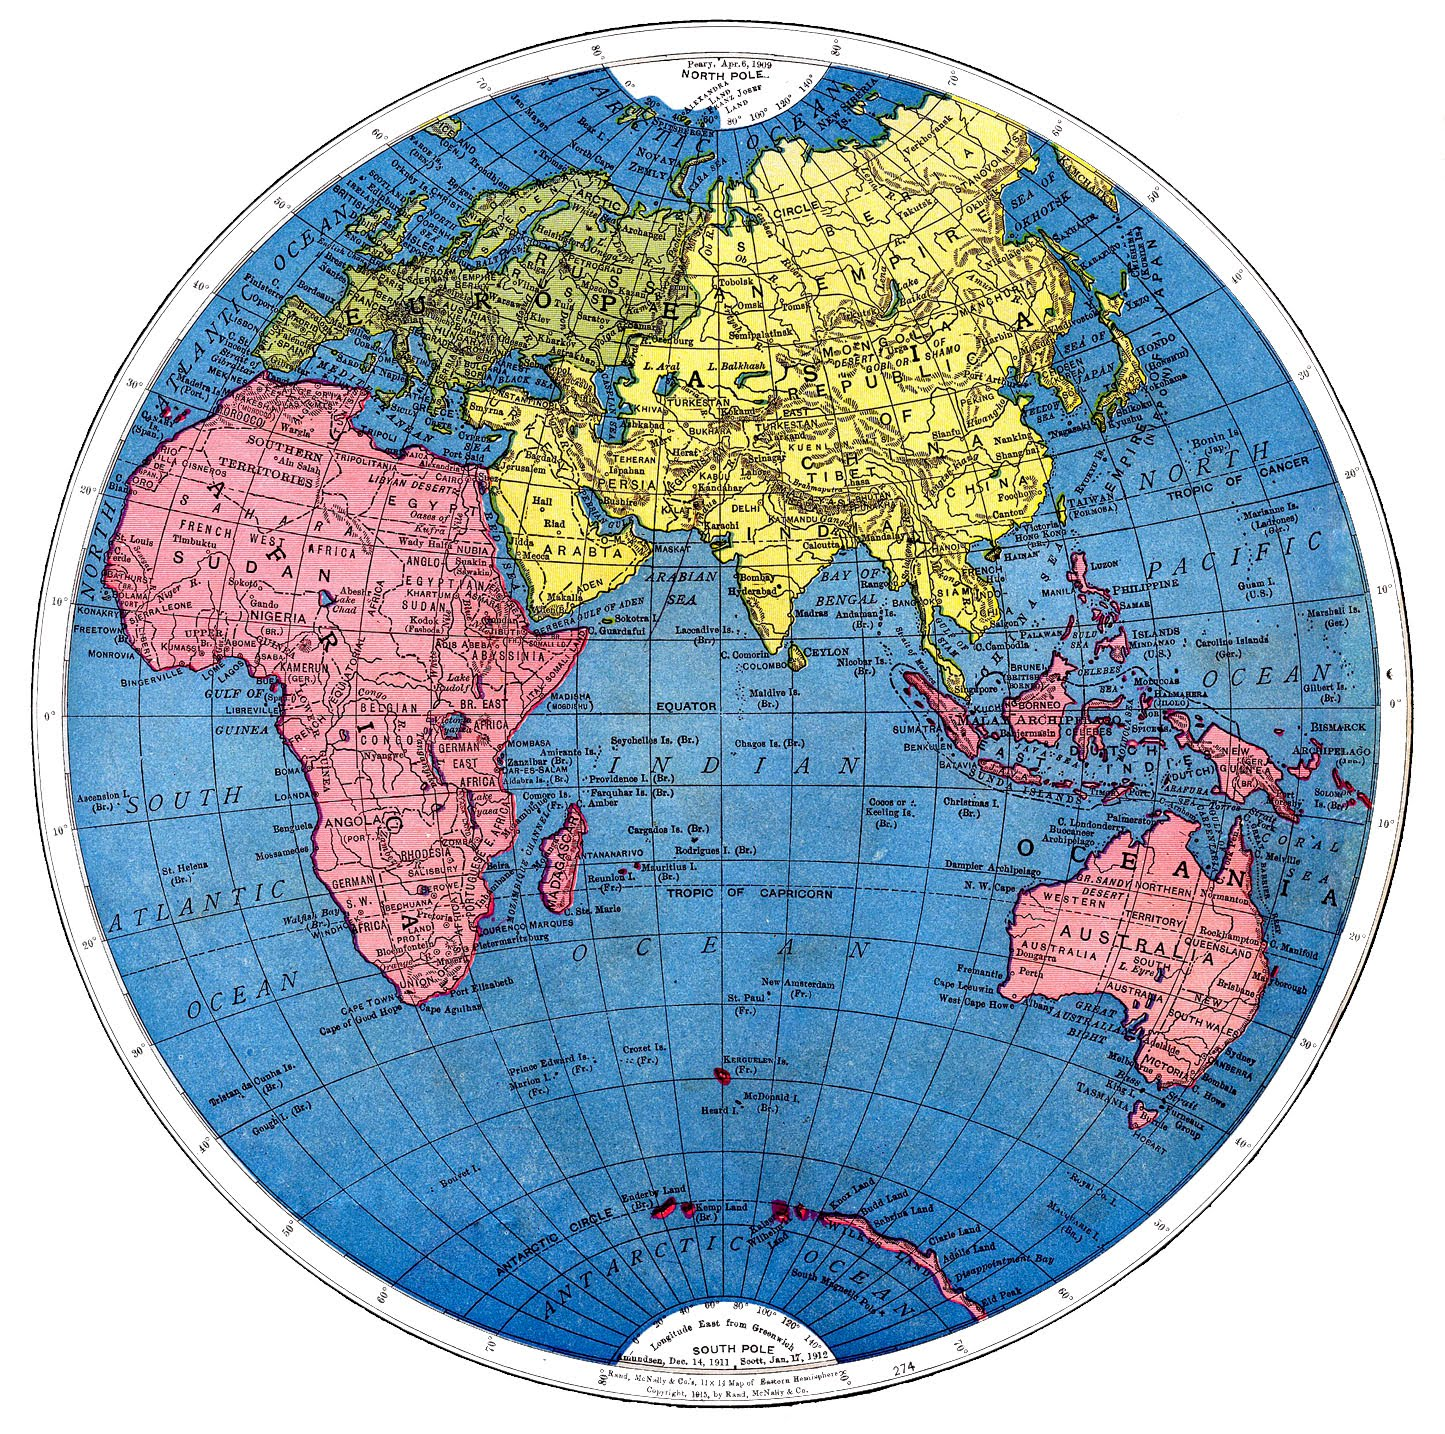 Agile image with map of world printable